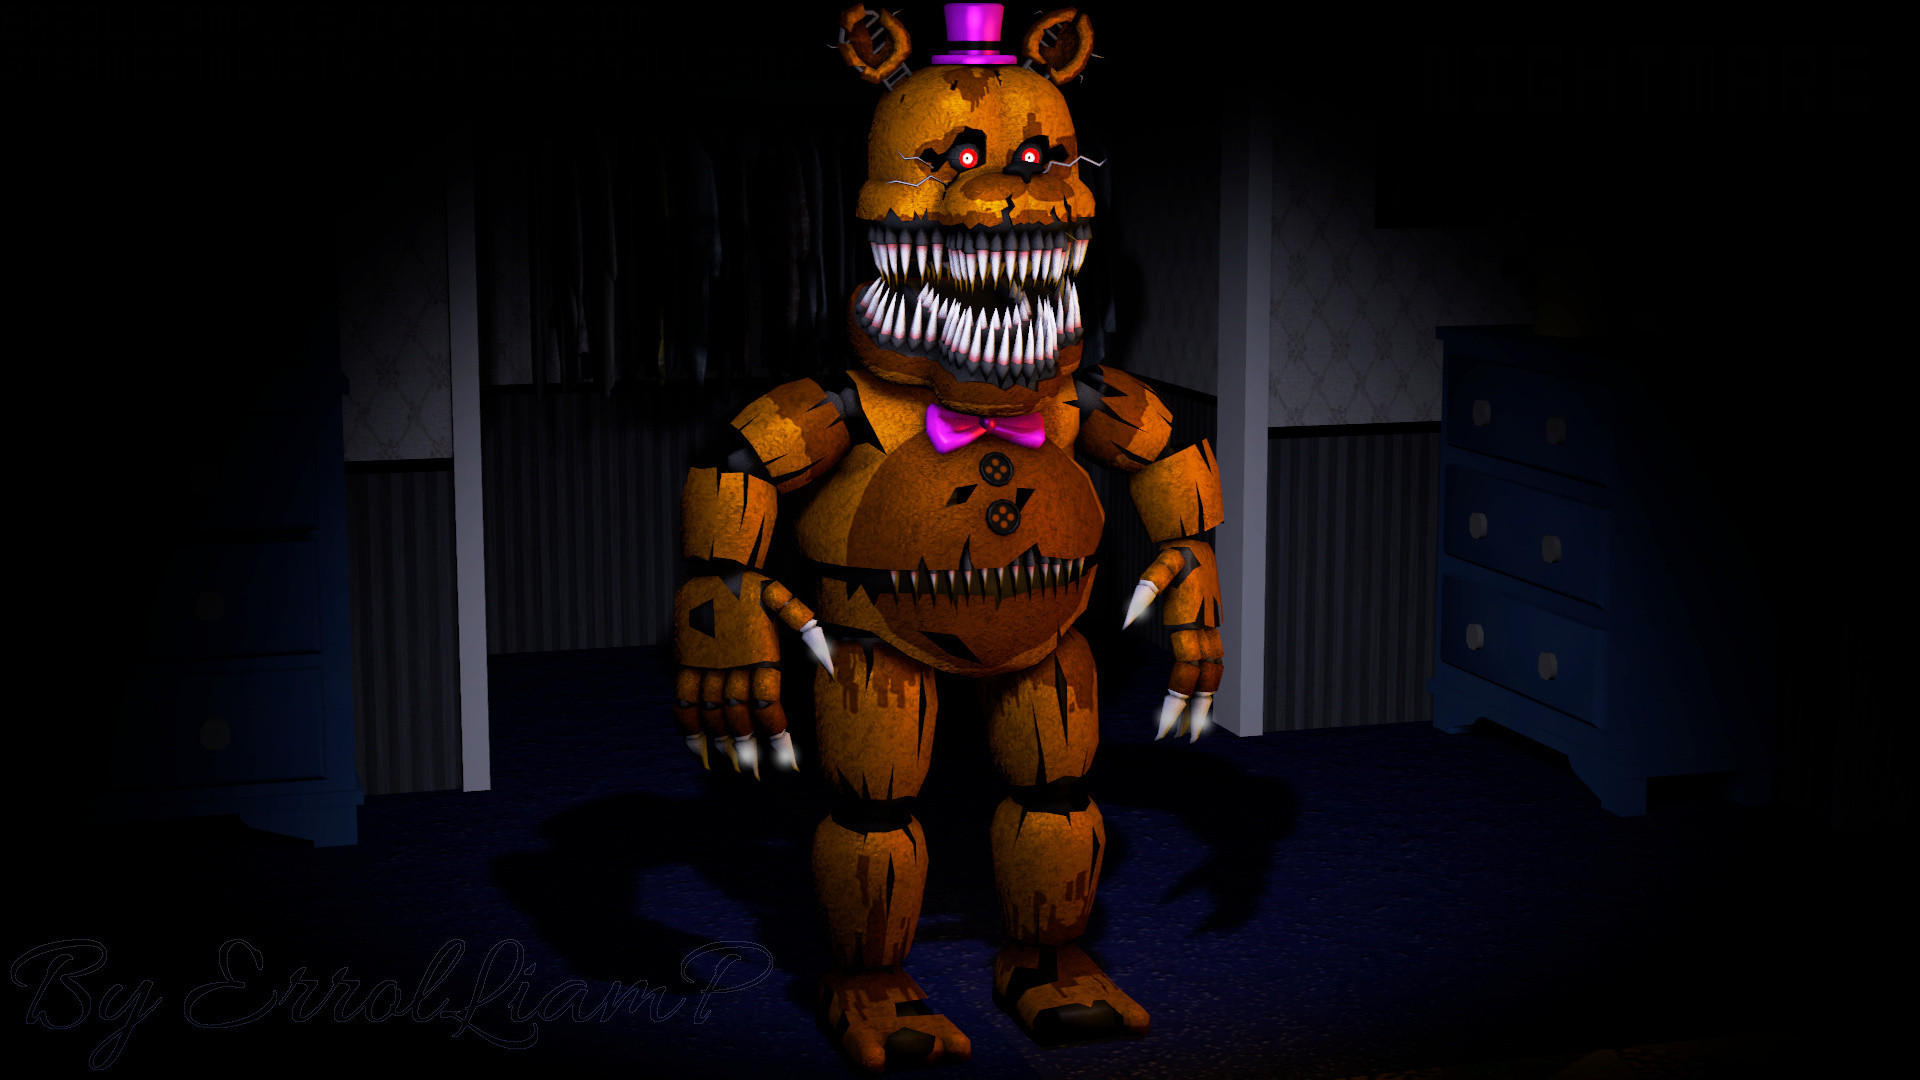 1920x1080 Nightmare, Fnaf, Horror Game, Freddy, Five Nights At Freddys, Five Nights